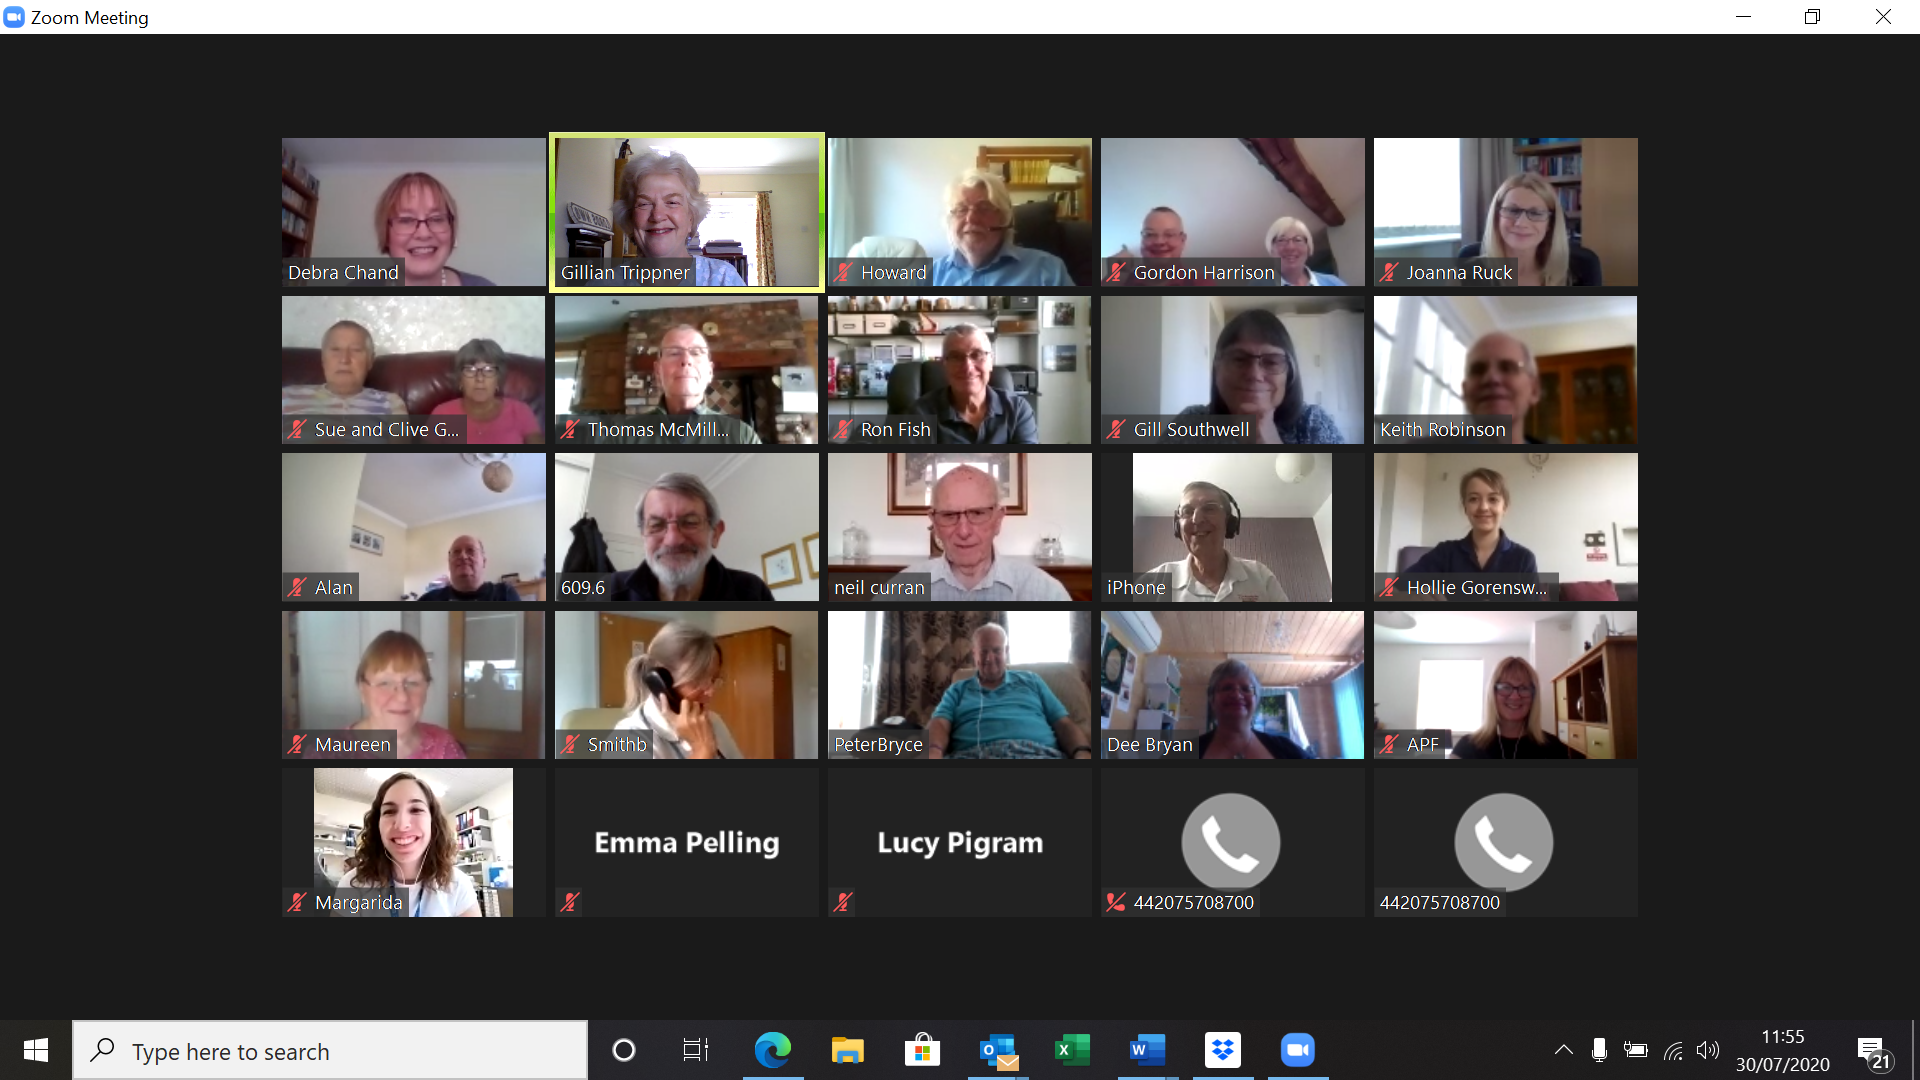 Picture of those attending the Zoom meeting